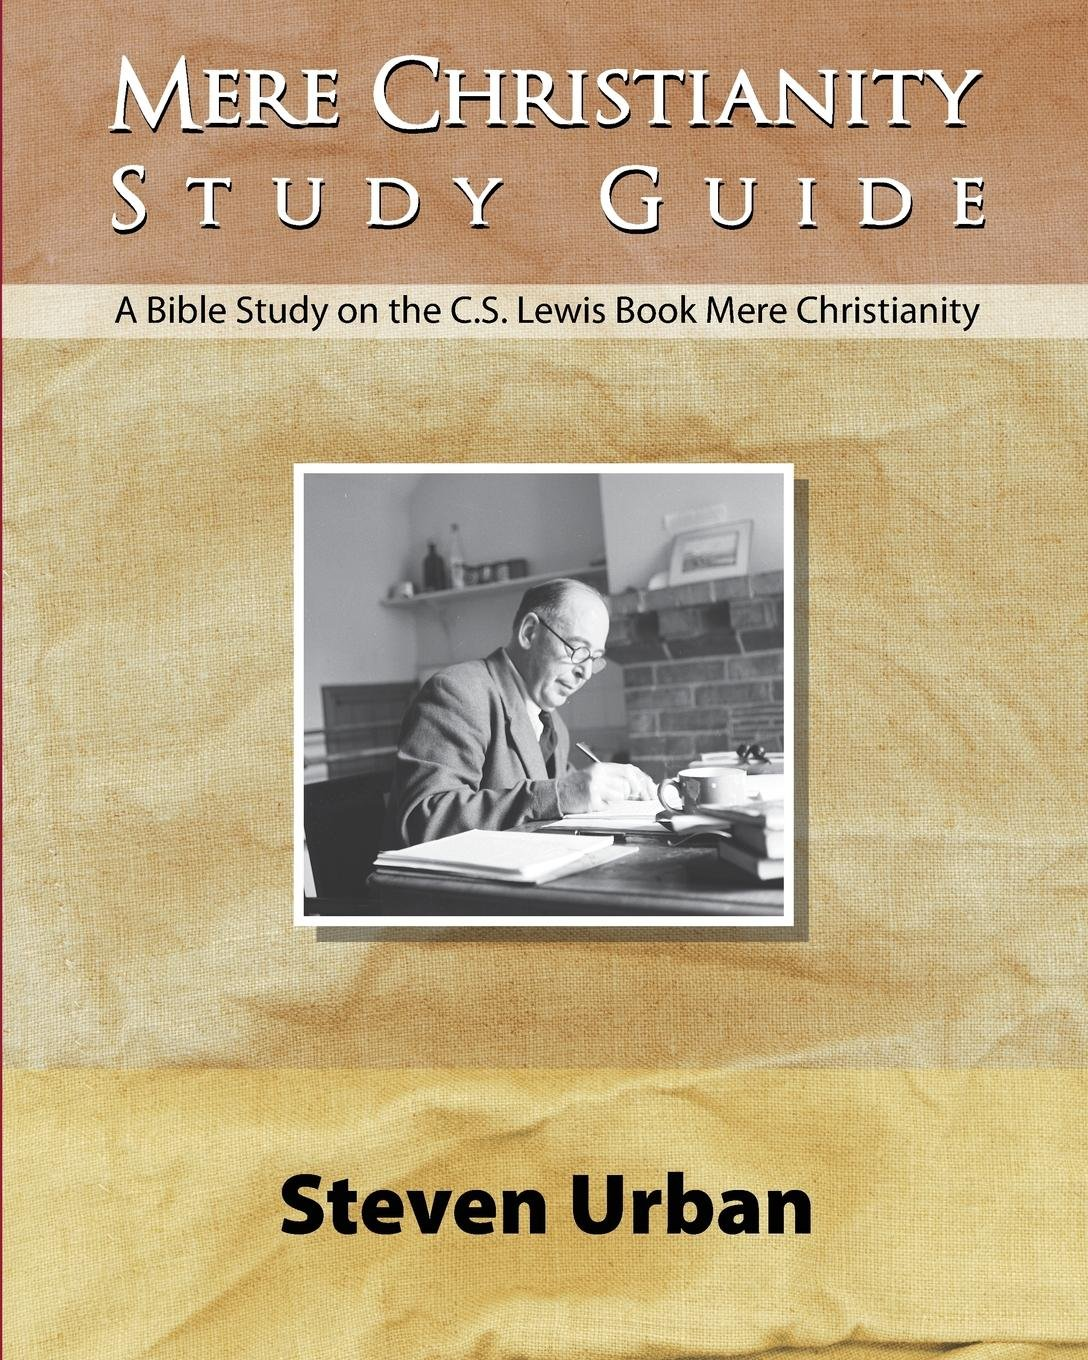 Mere Christianity Study Guide: A Bible Study on the C.S. Lewis Book Mere  Christianity (CS Lewis Study): Steven Urban: 9780997841701: Amazon.com:  Books